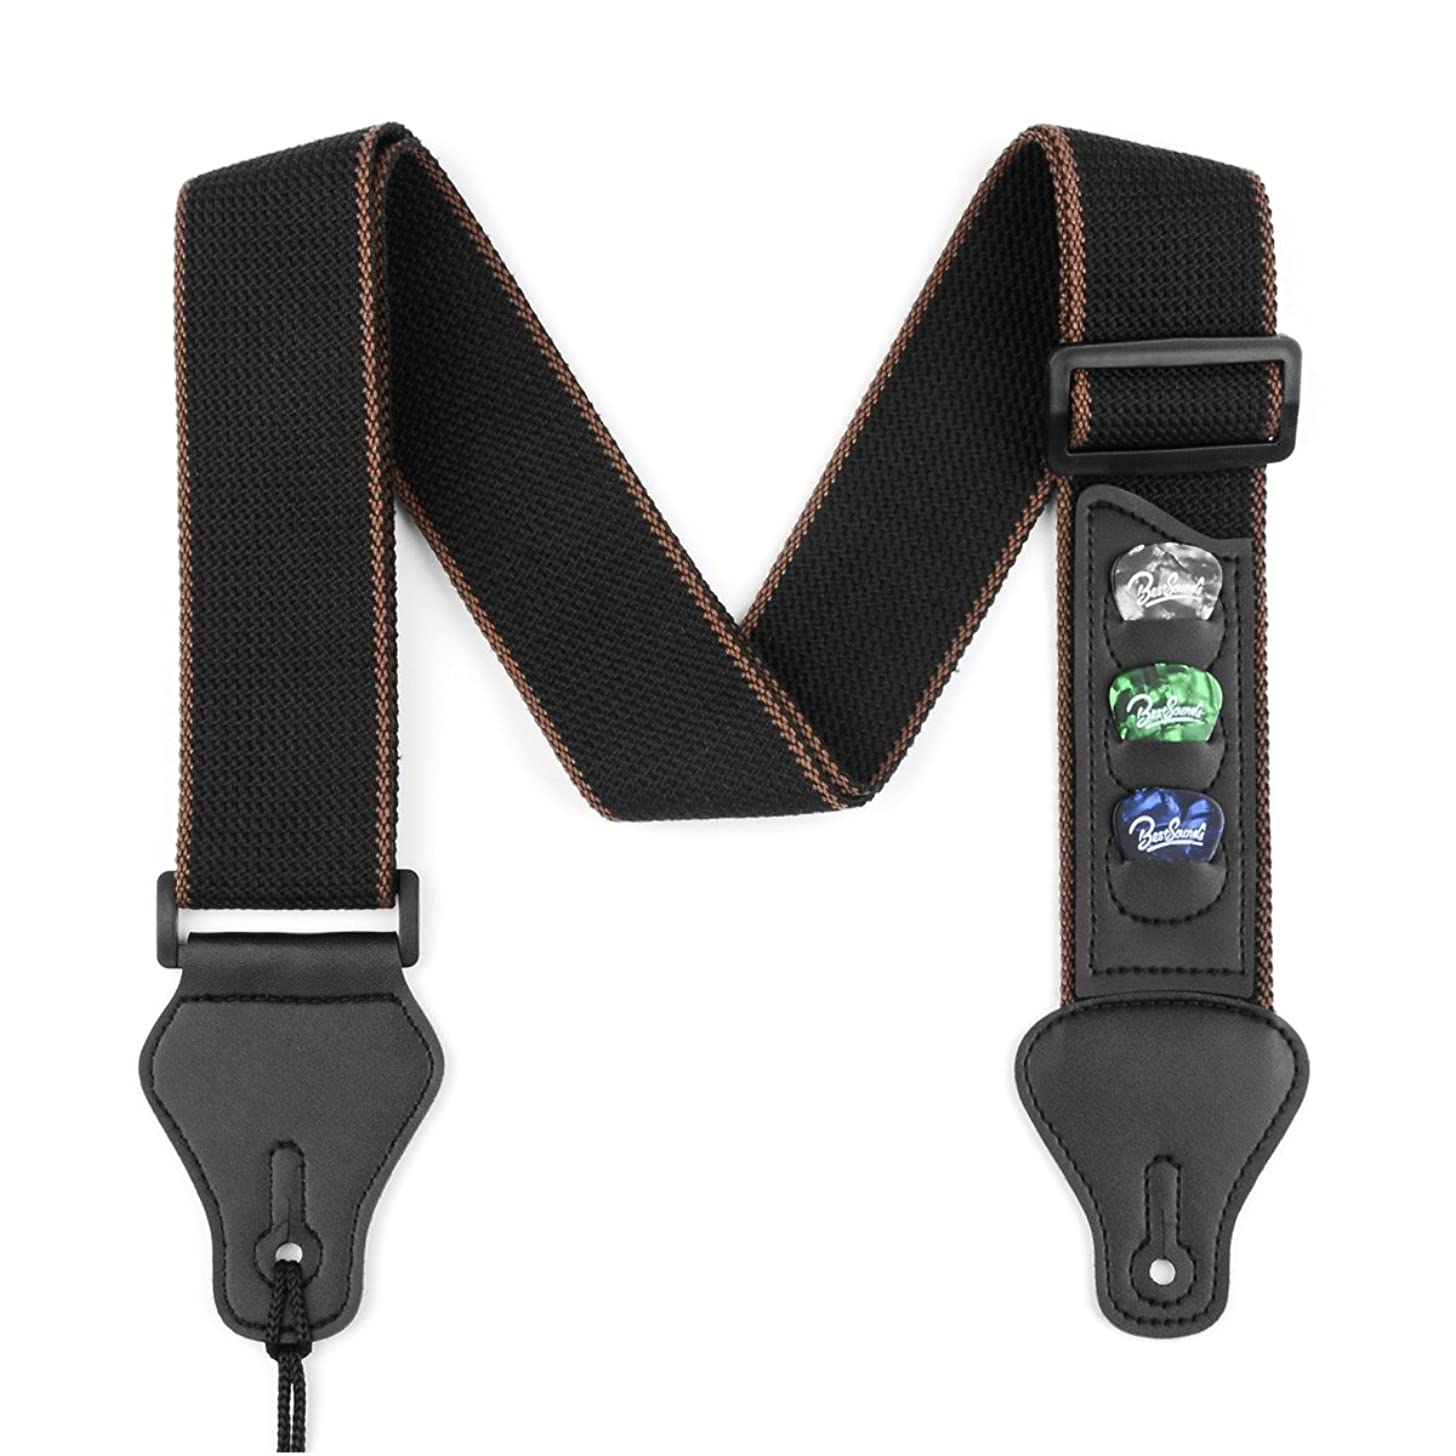 BestSounds Guitar Strap with 3 Pick Holders 100% Soft Cotton Strap For Bass Electric & Acoustic Guitars (Black)